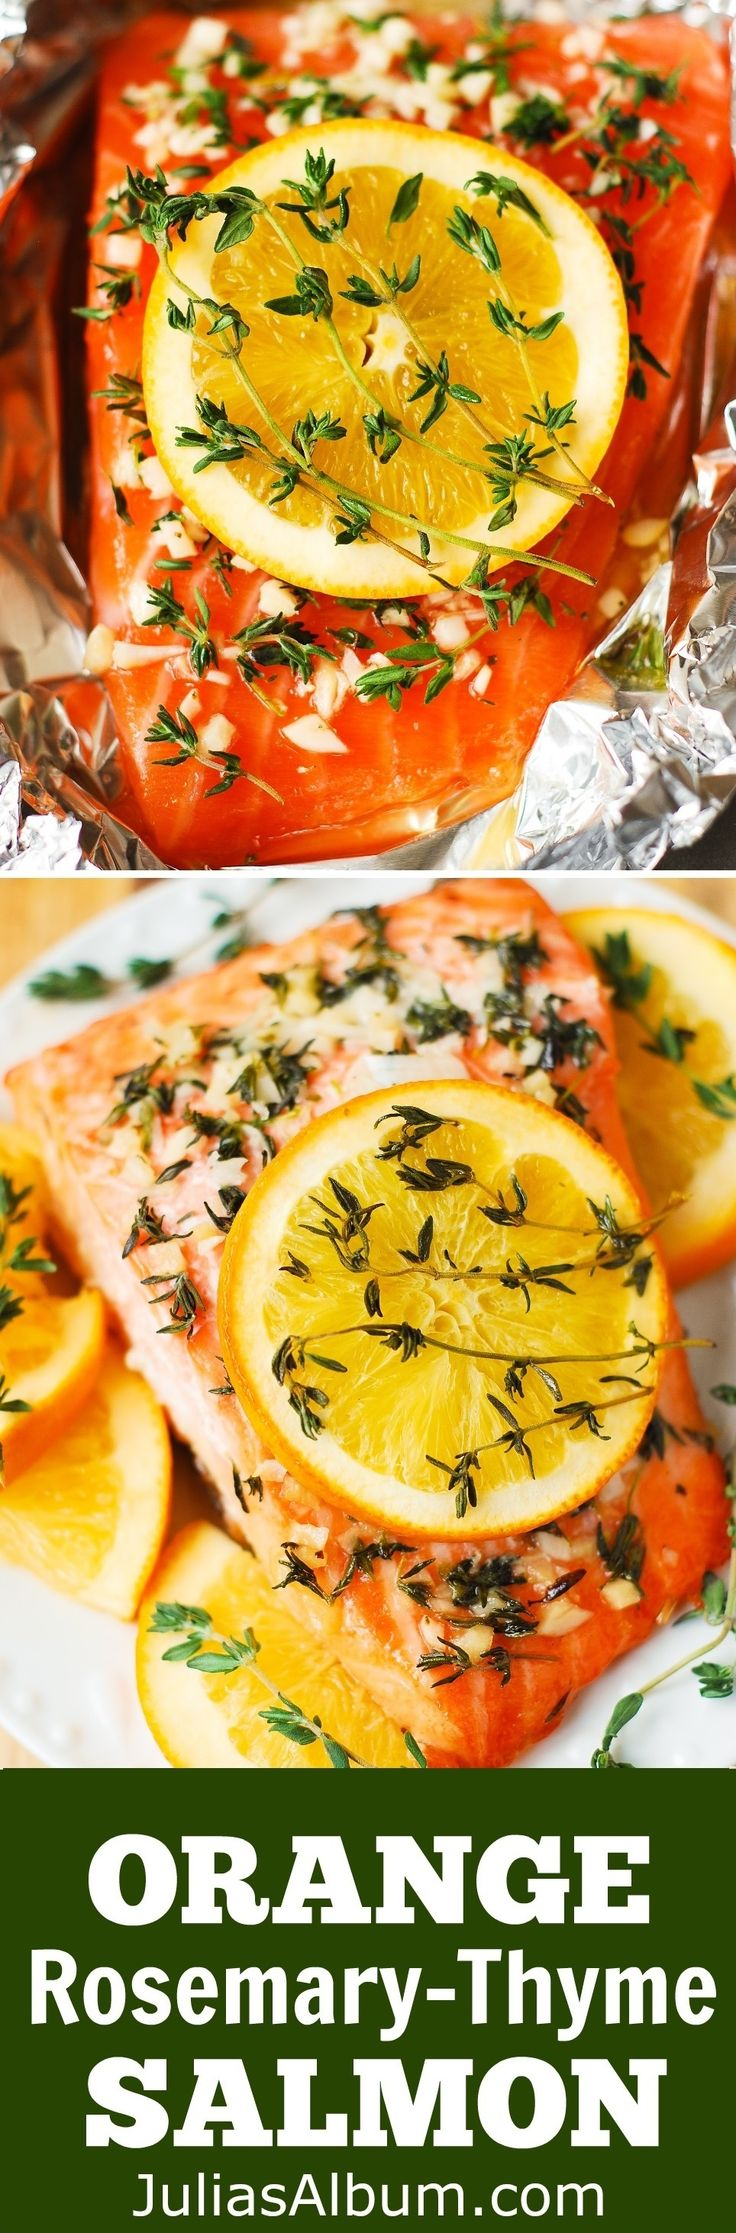 how to cook garlic fish with oranges